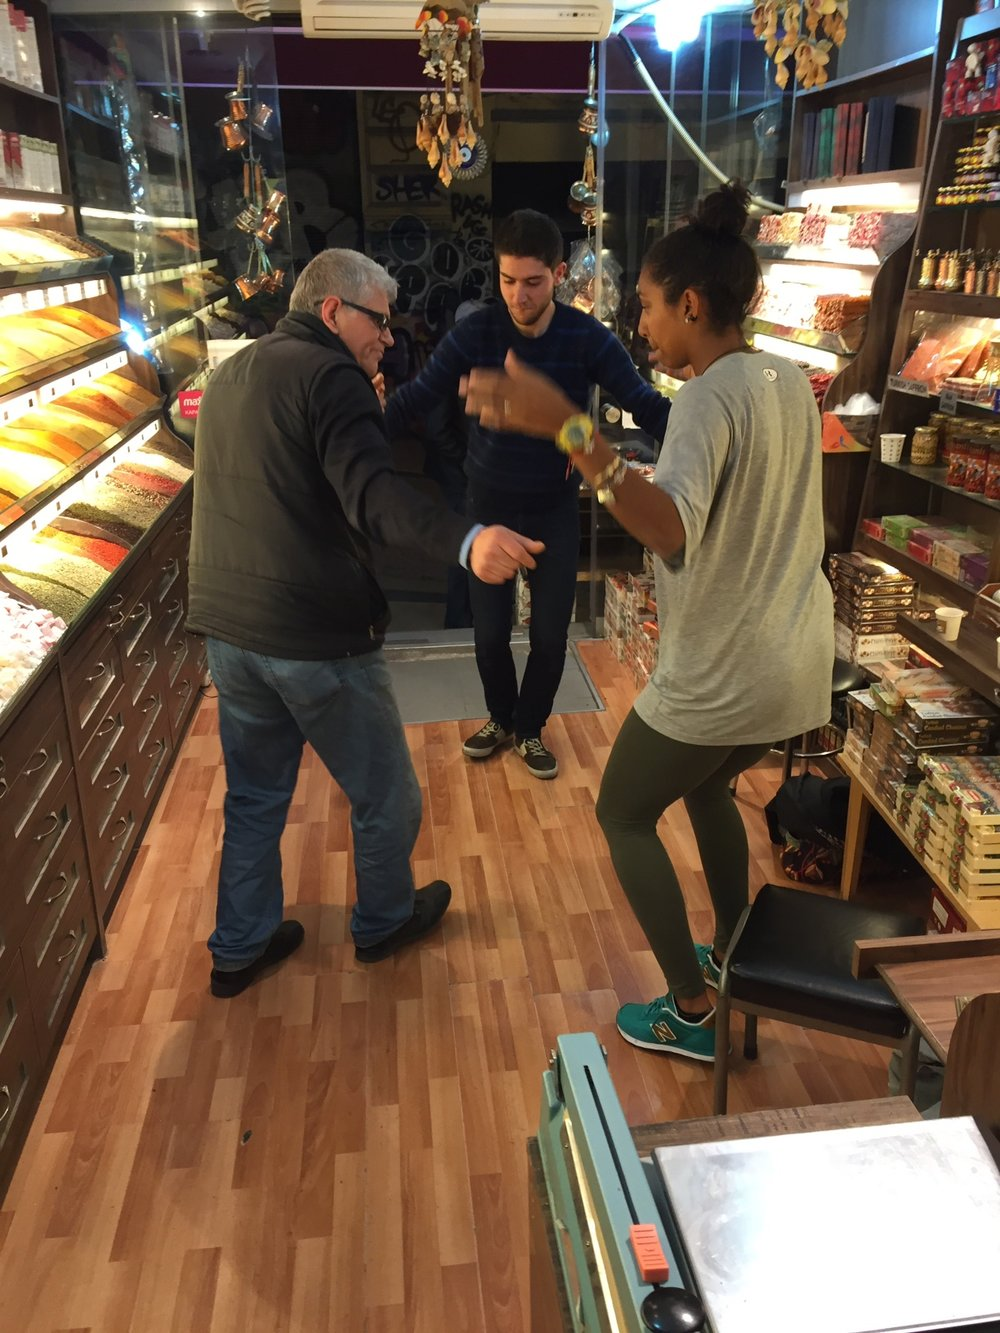 Happening upon traditional Bulgarian dance in an Istanbul nut shop with the Bulgarian owner and Syrian refugee assistant, we spoke in depth for 3 hours over Turkish tea, 2015